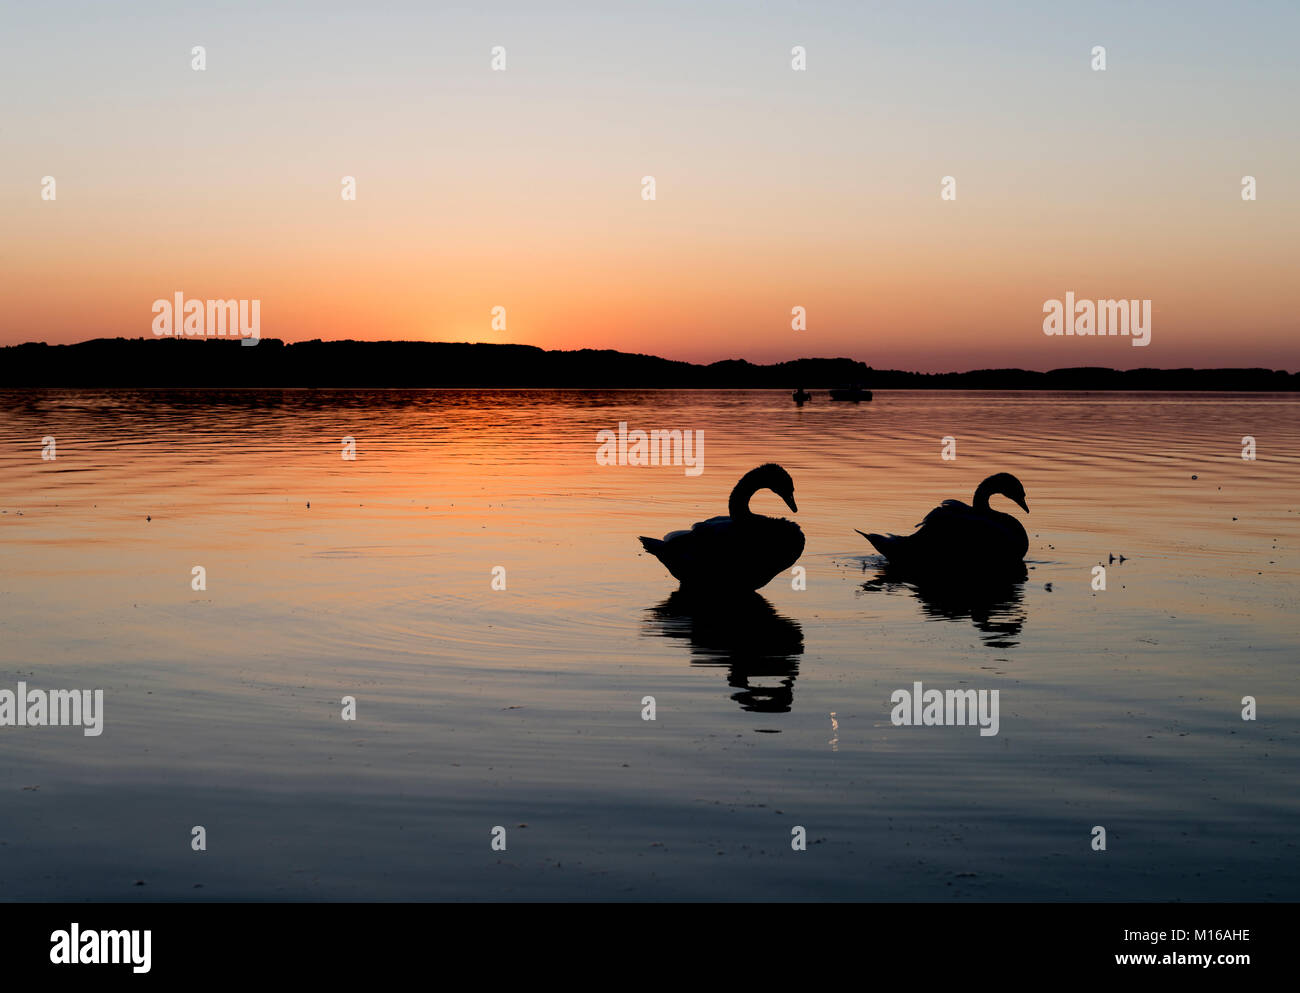 Sunset at the Chiemsee, silhouettes of two swans, near Prien, Bavaria, Germany Stock Photo